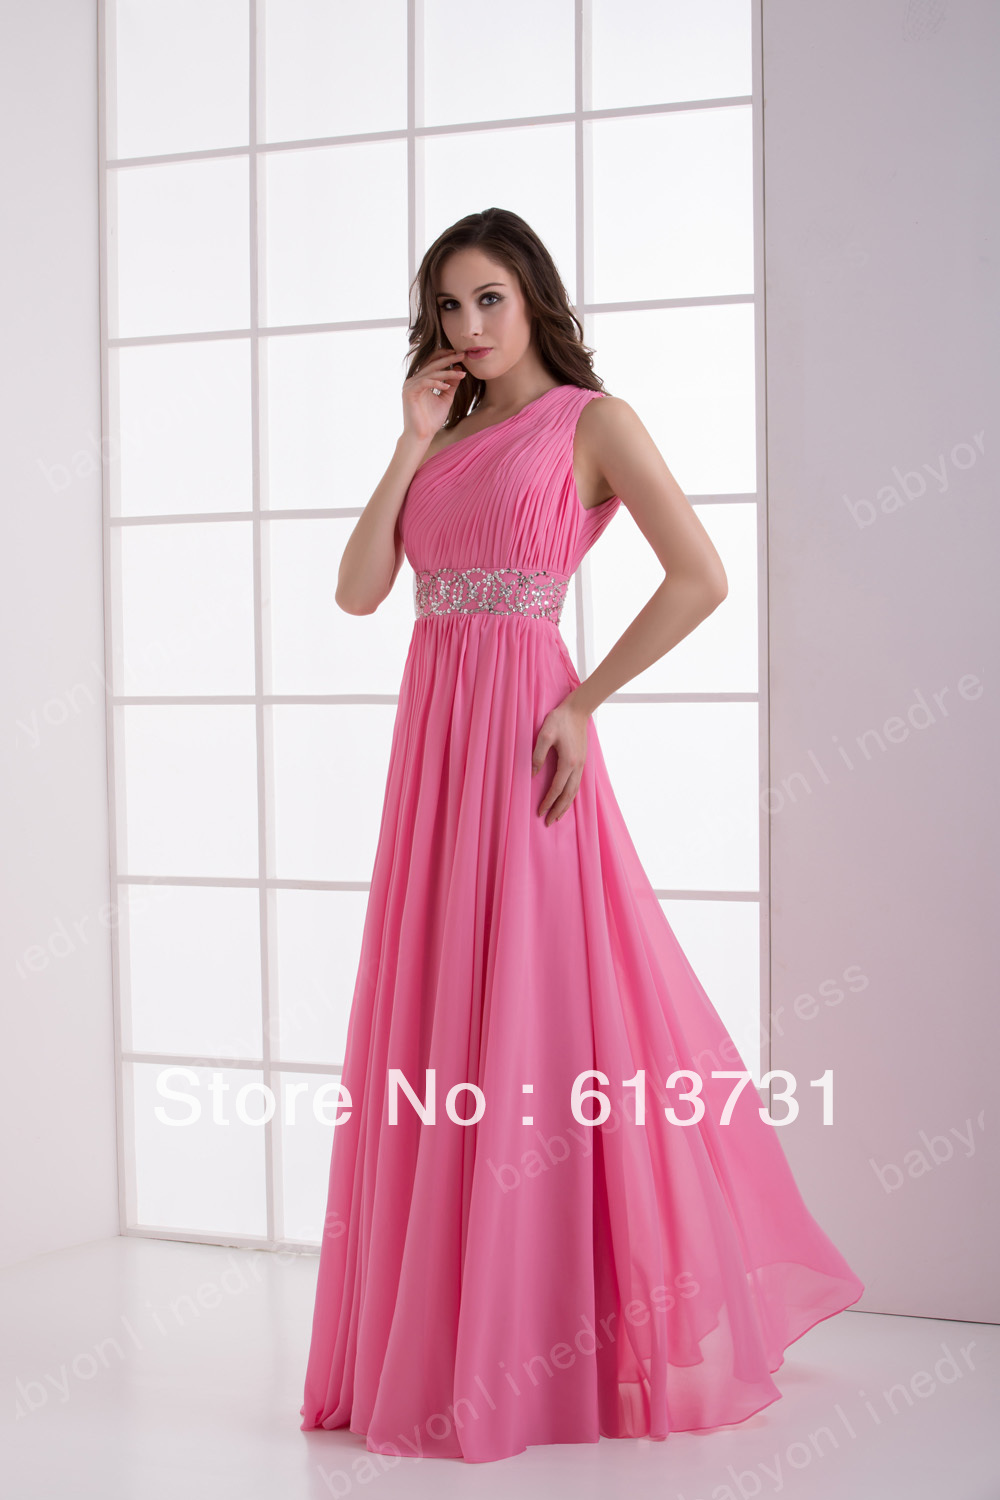 Custom made 2013 new sexy long bright pink evening dresses for Sexy dresses for wedding guests